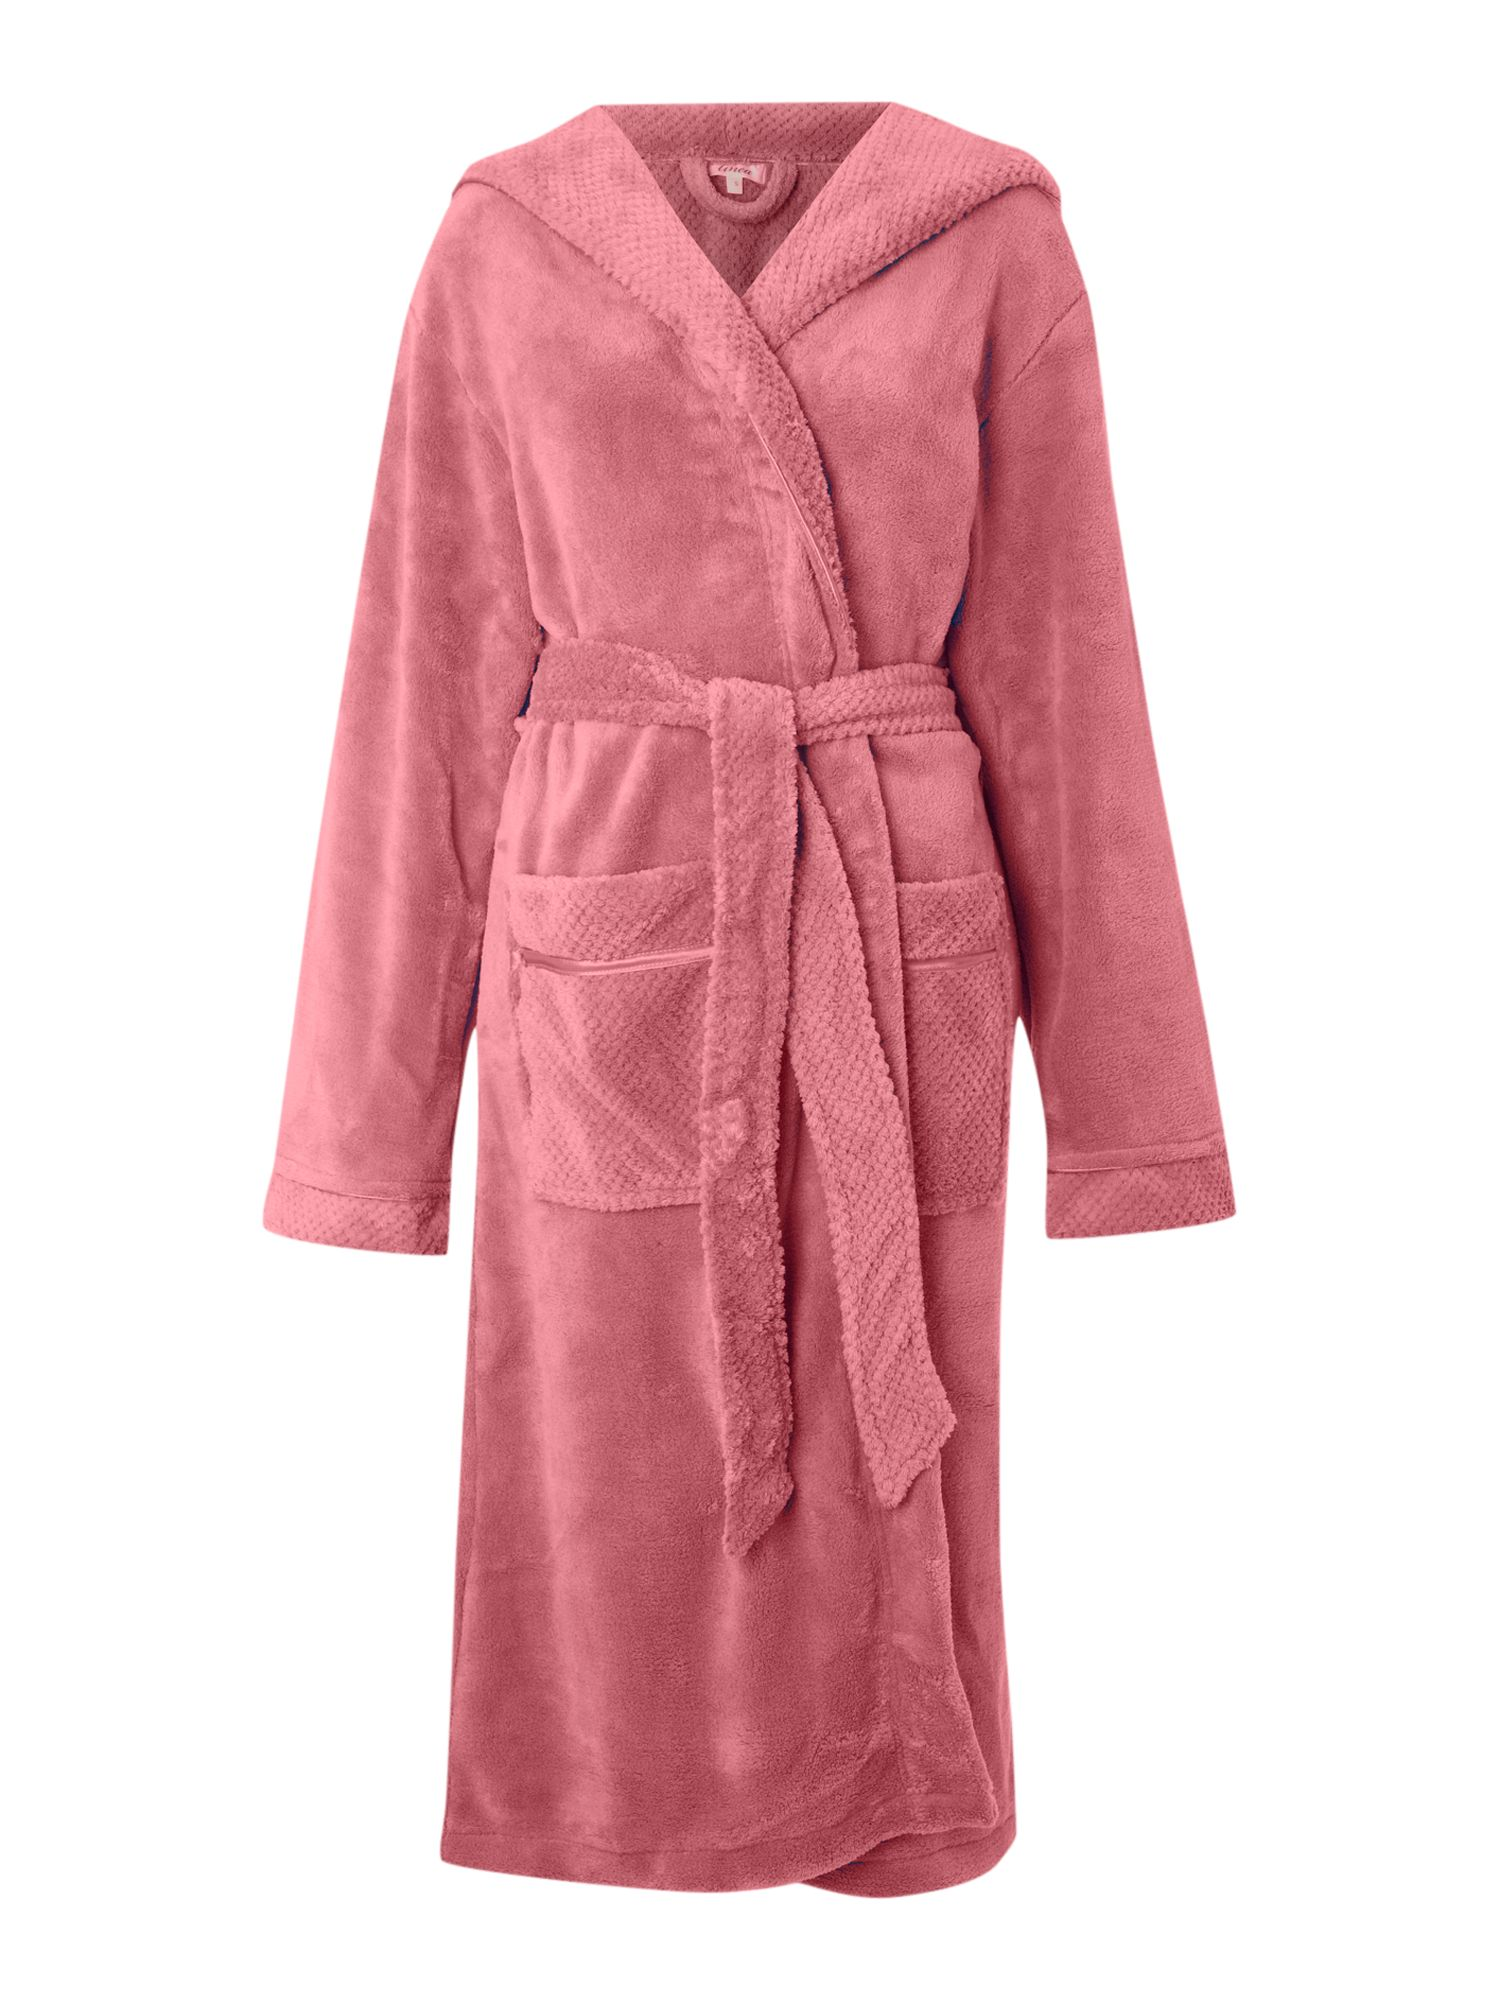 Women's Linea Cosy soft robe with hood, Light Pink